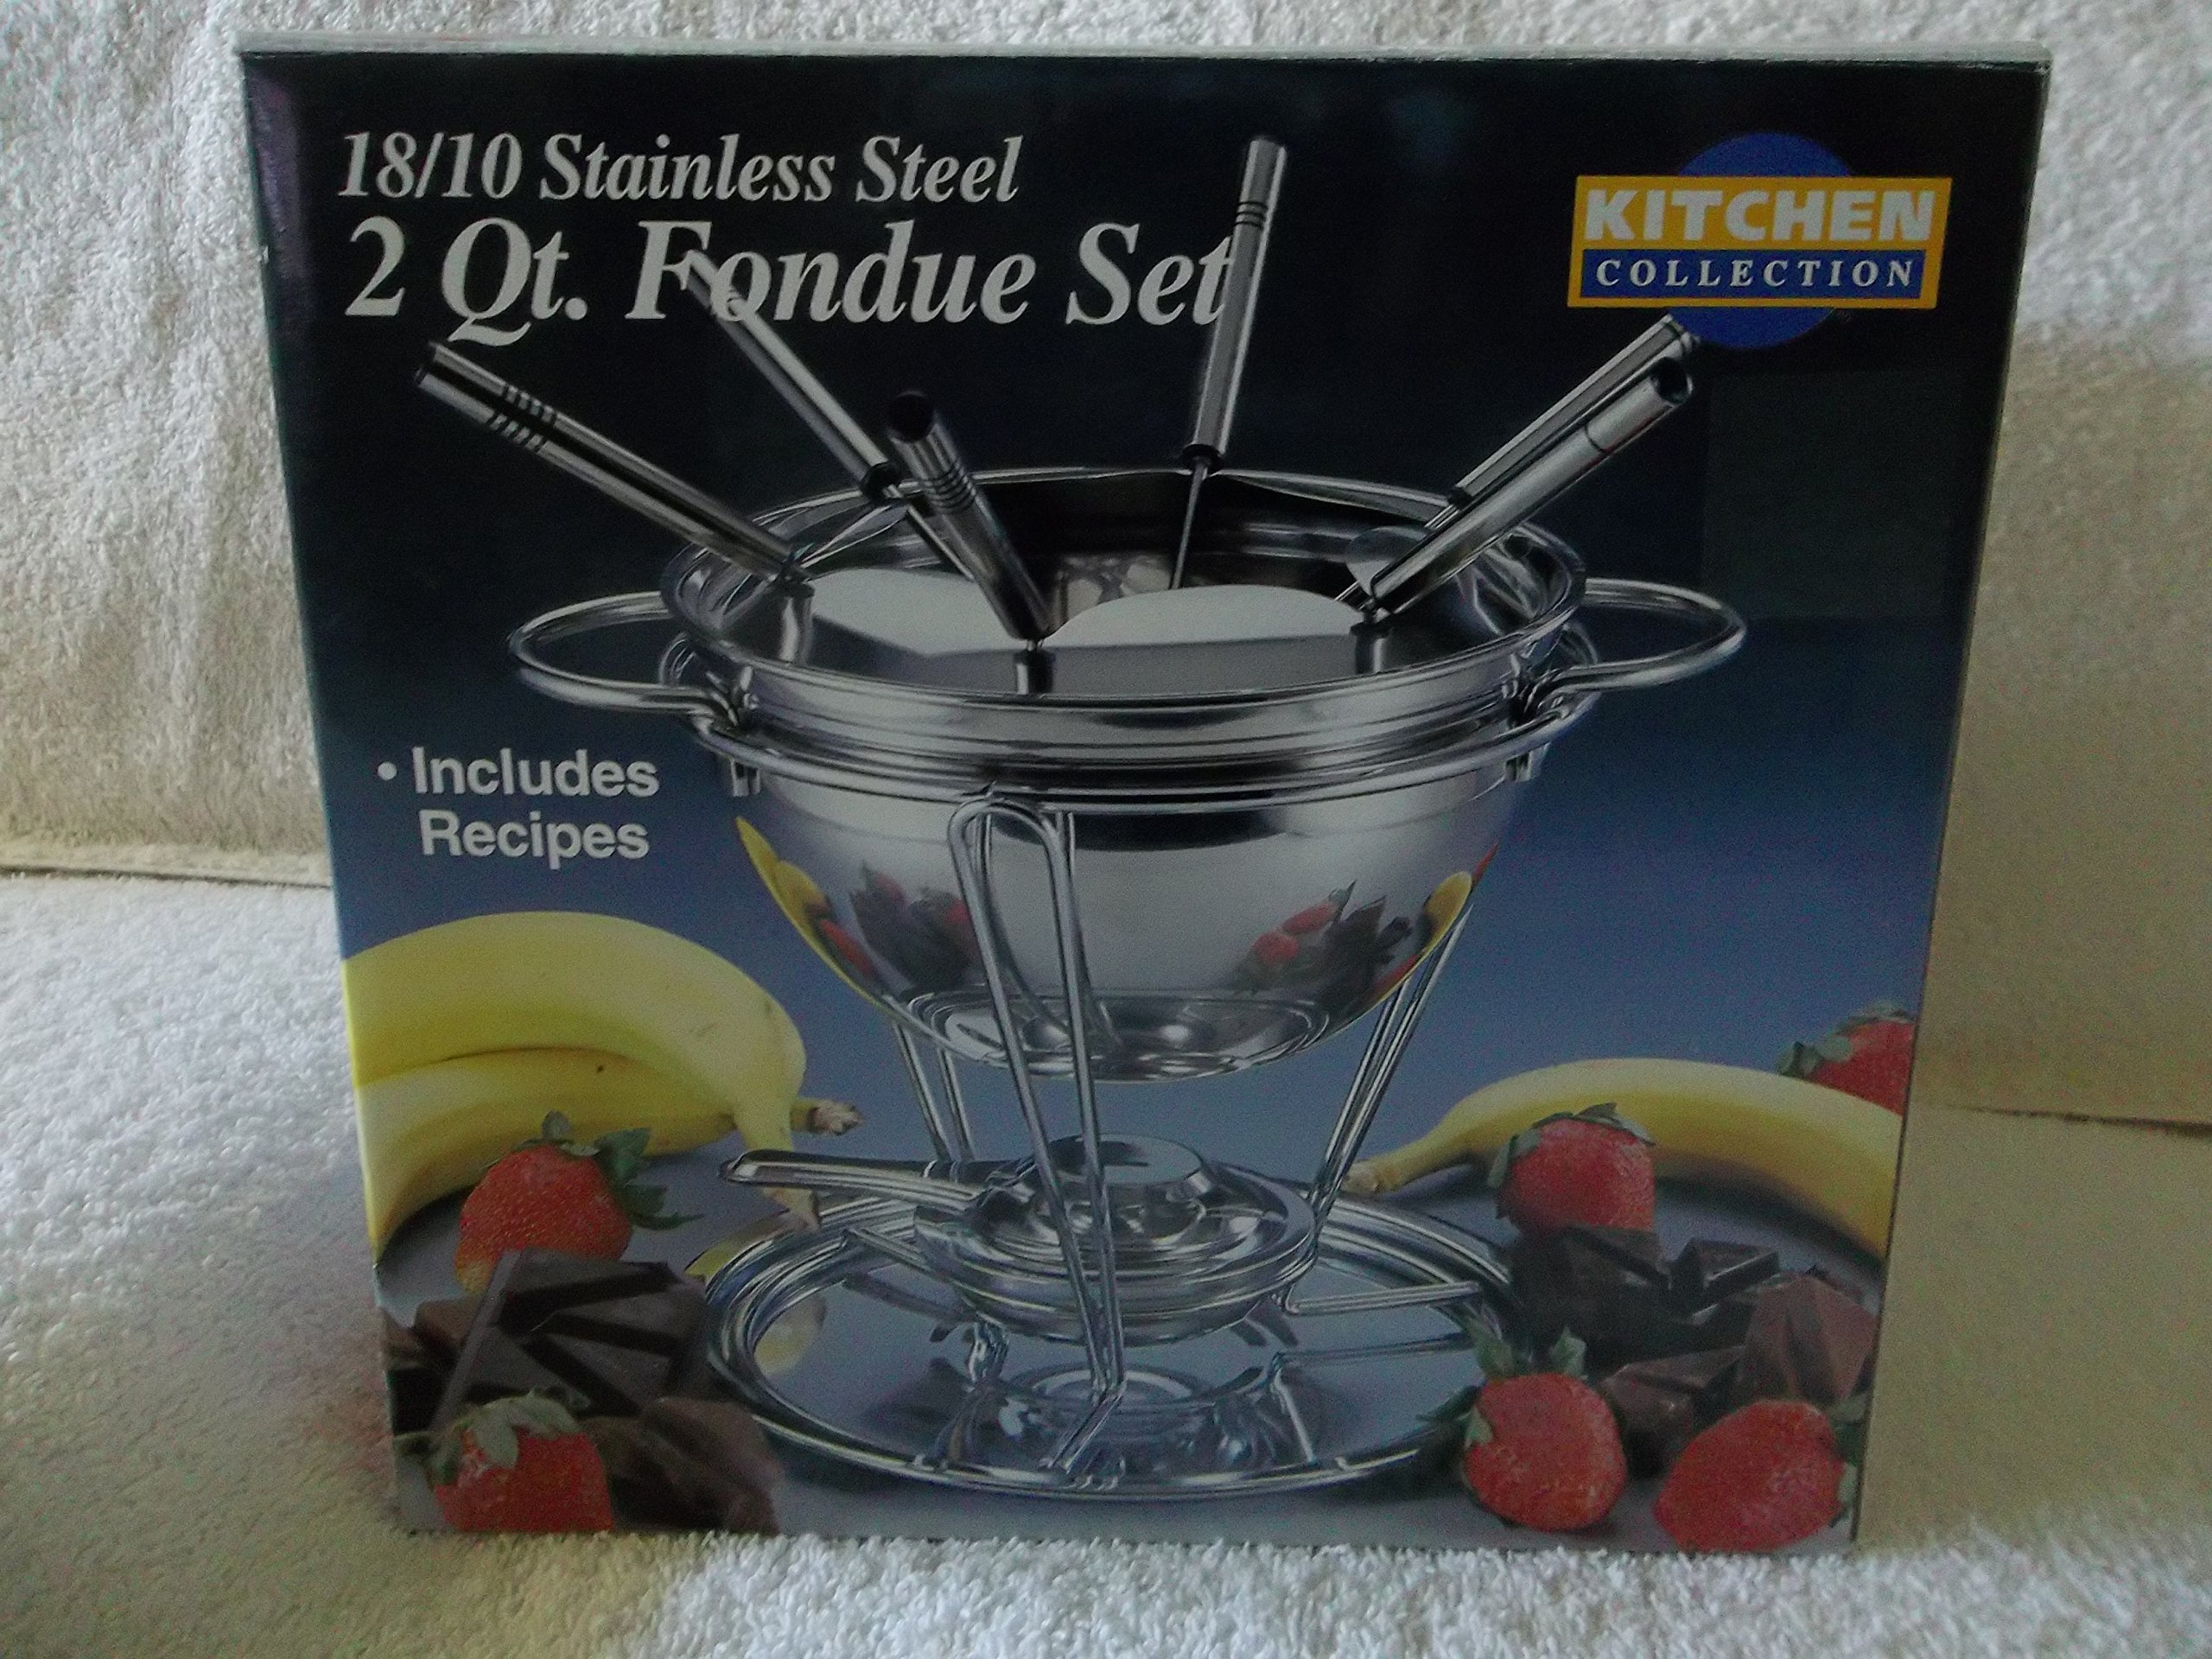 KITCHEN COLLECTION 18/10 Stainless Steel 2qt. Fondue Set